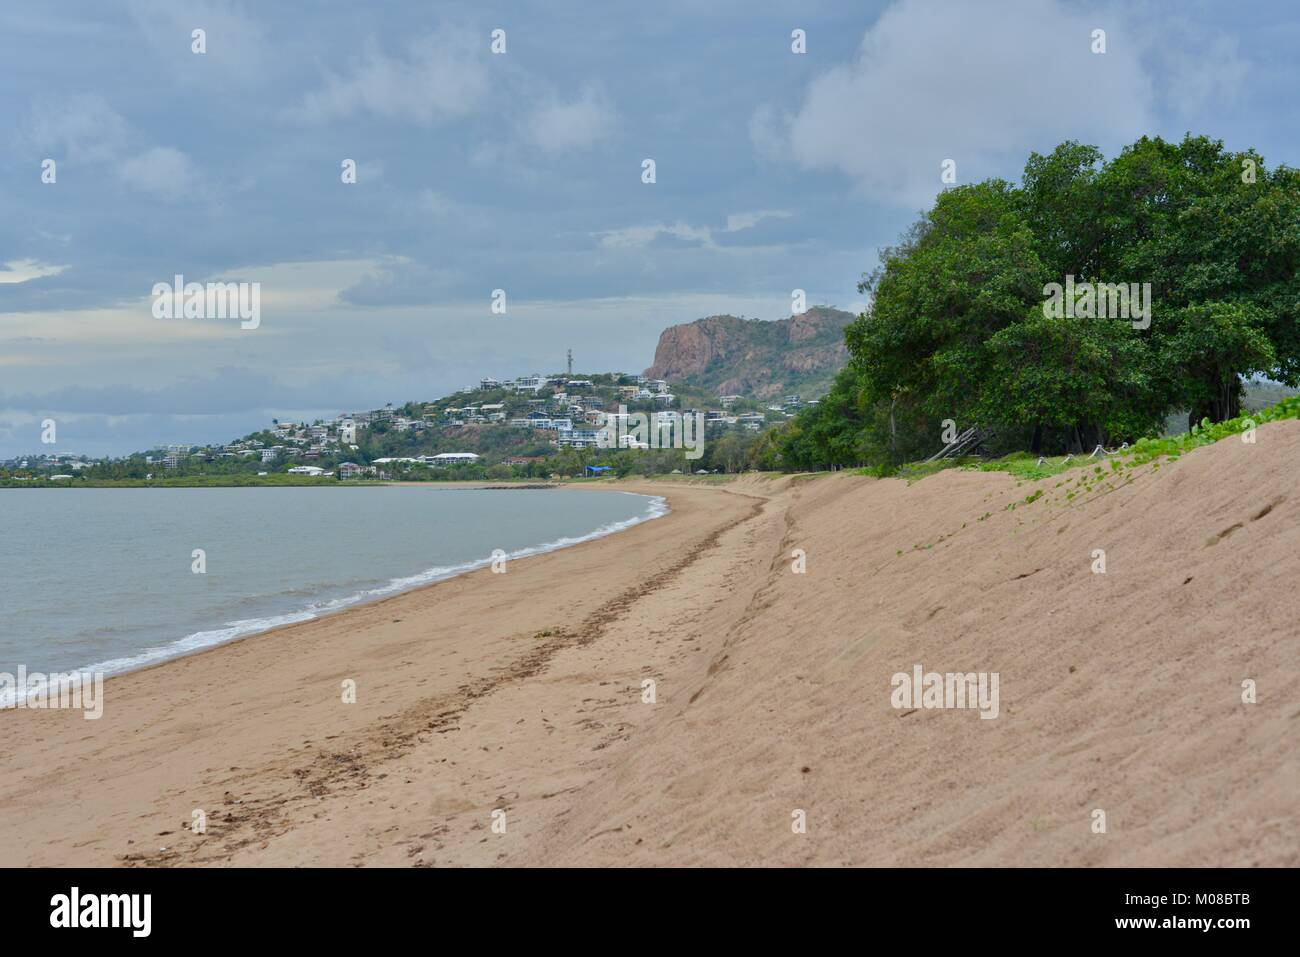 Images - Rowes bay townsville